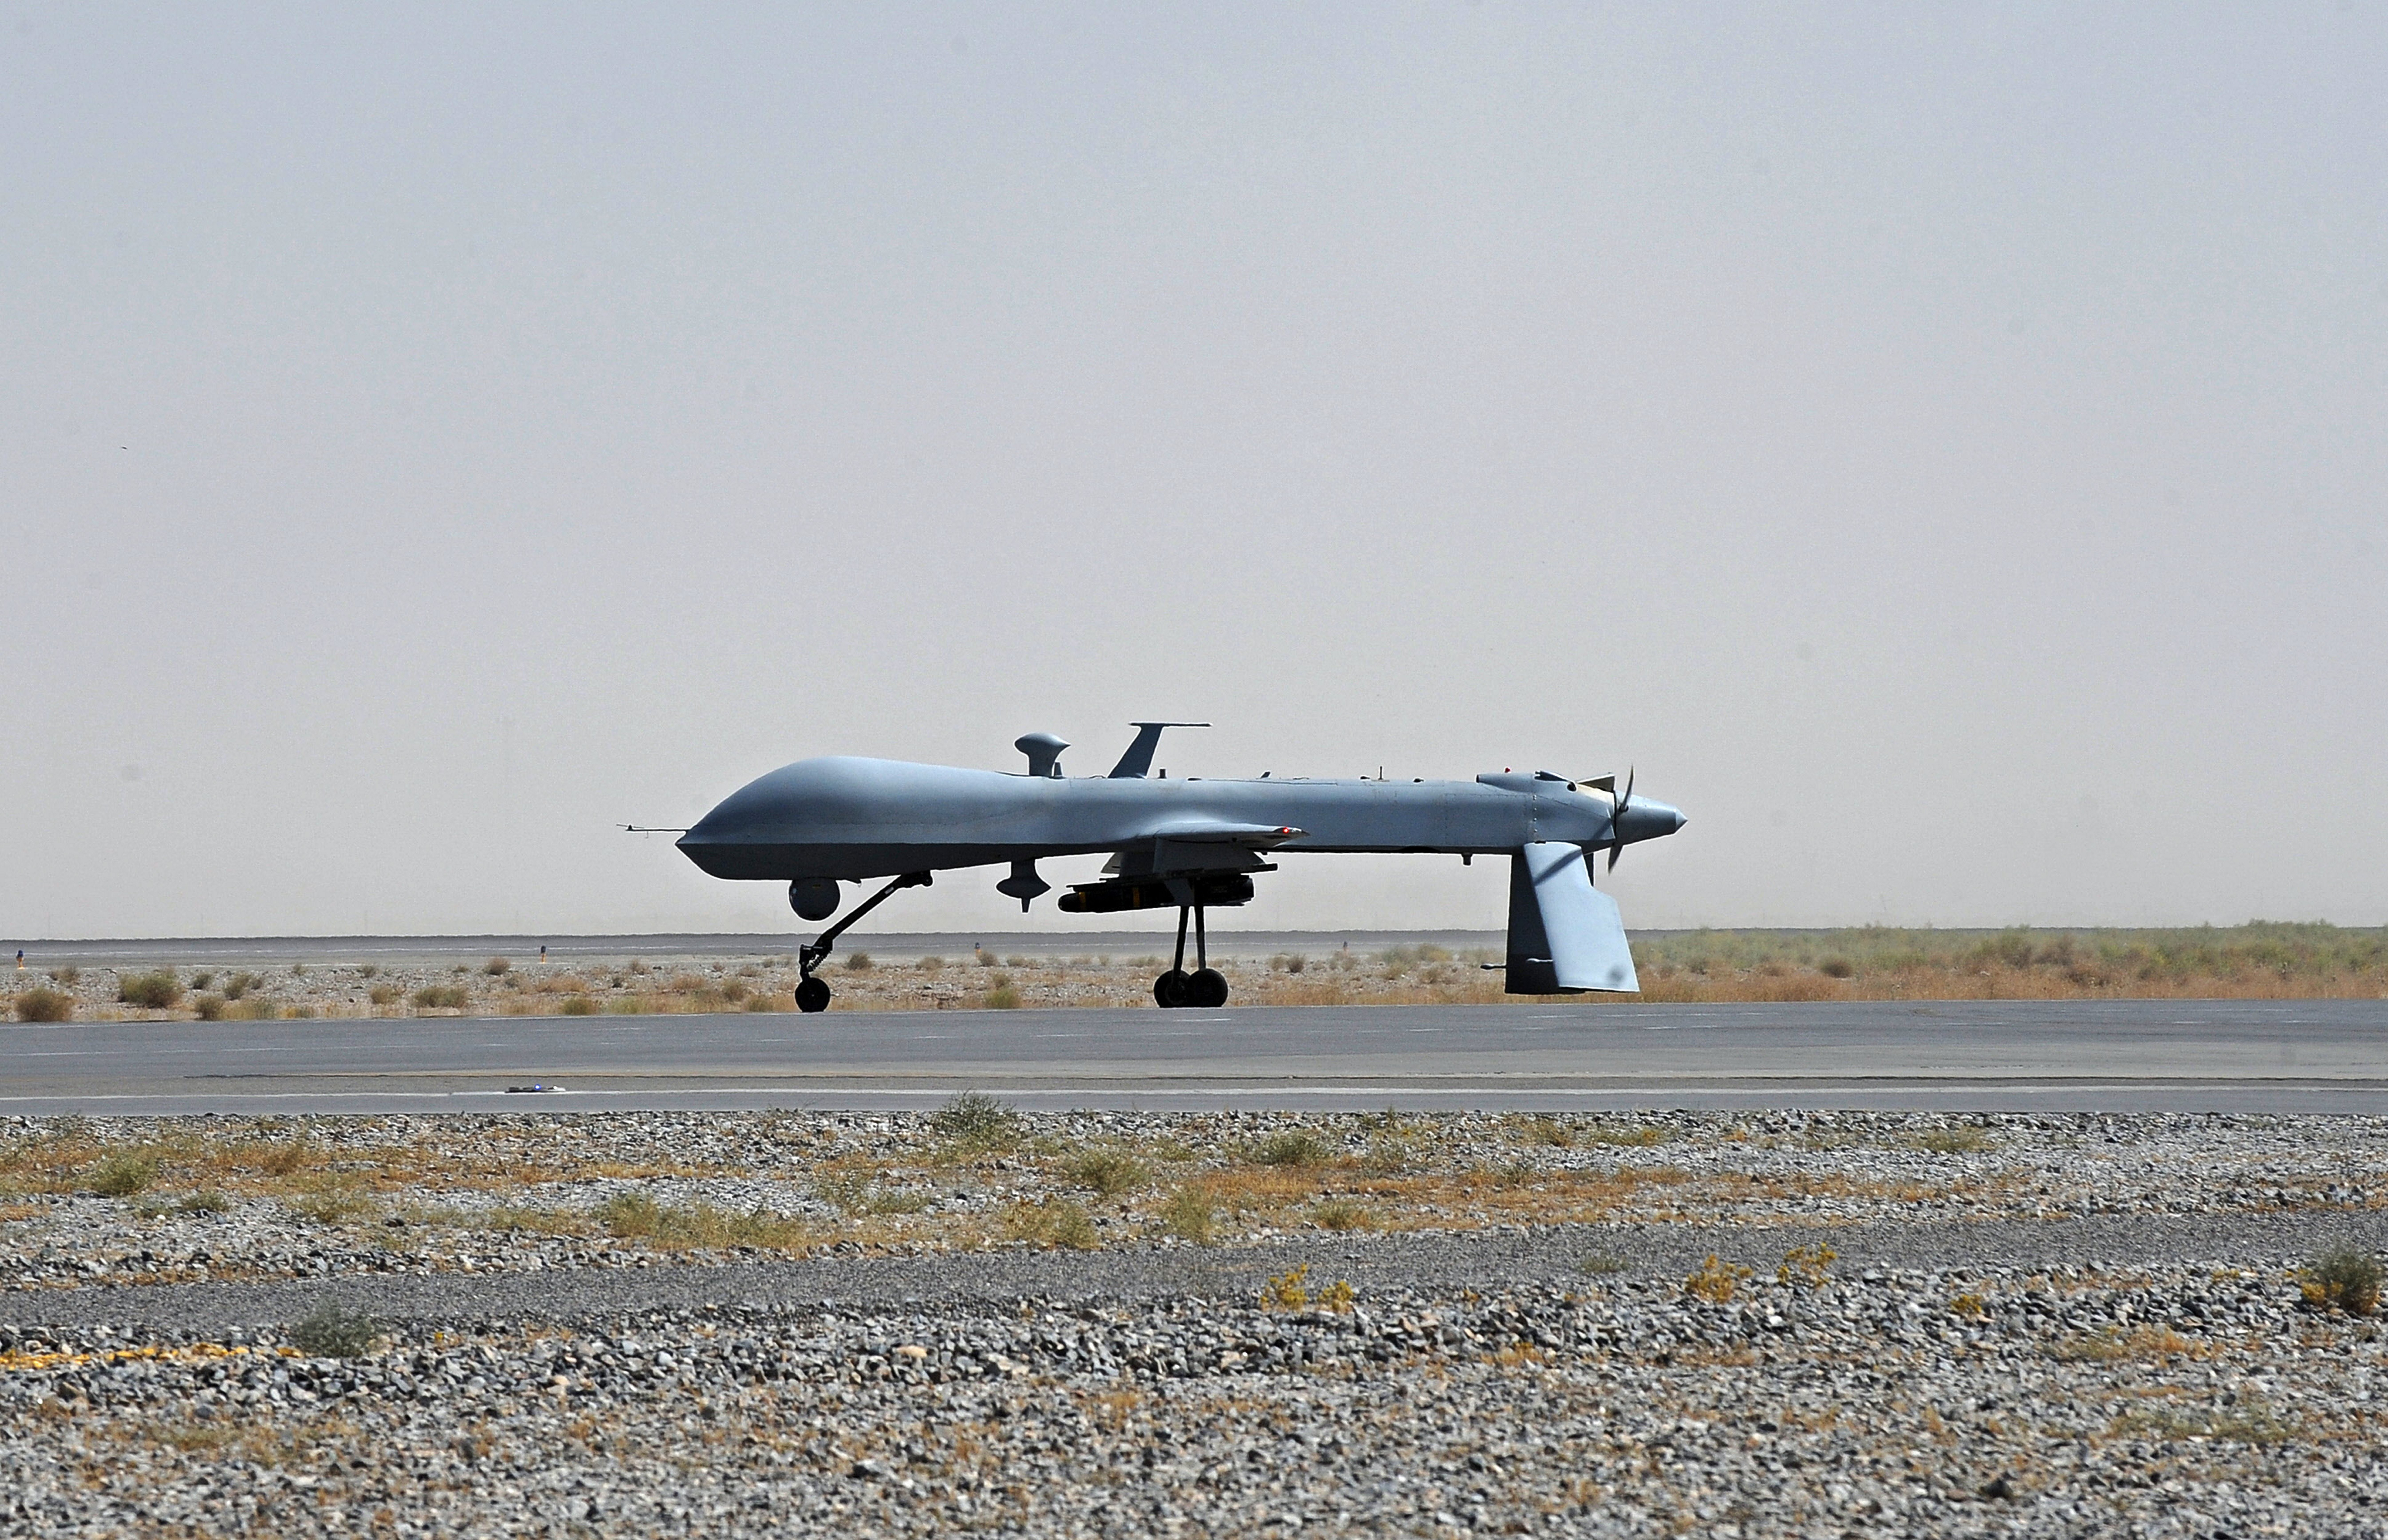 Drones, such as this Predator, play an important role in the fight against terrorism. (AP file photo)